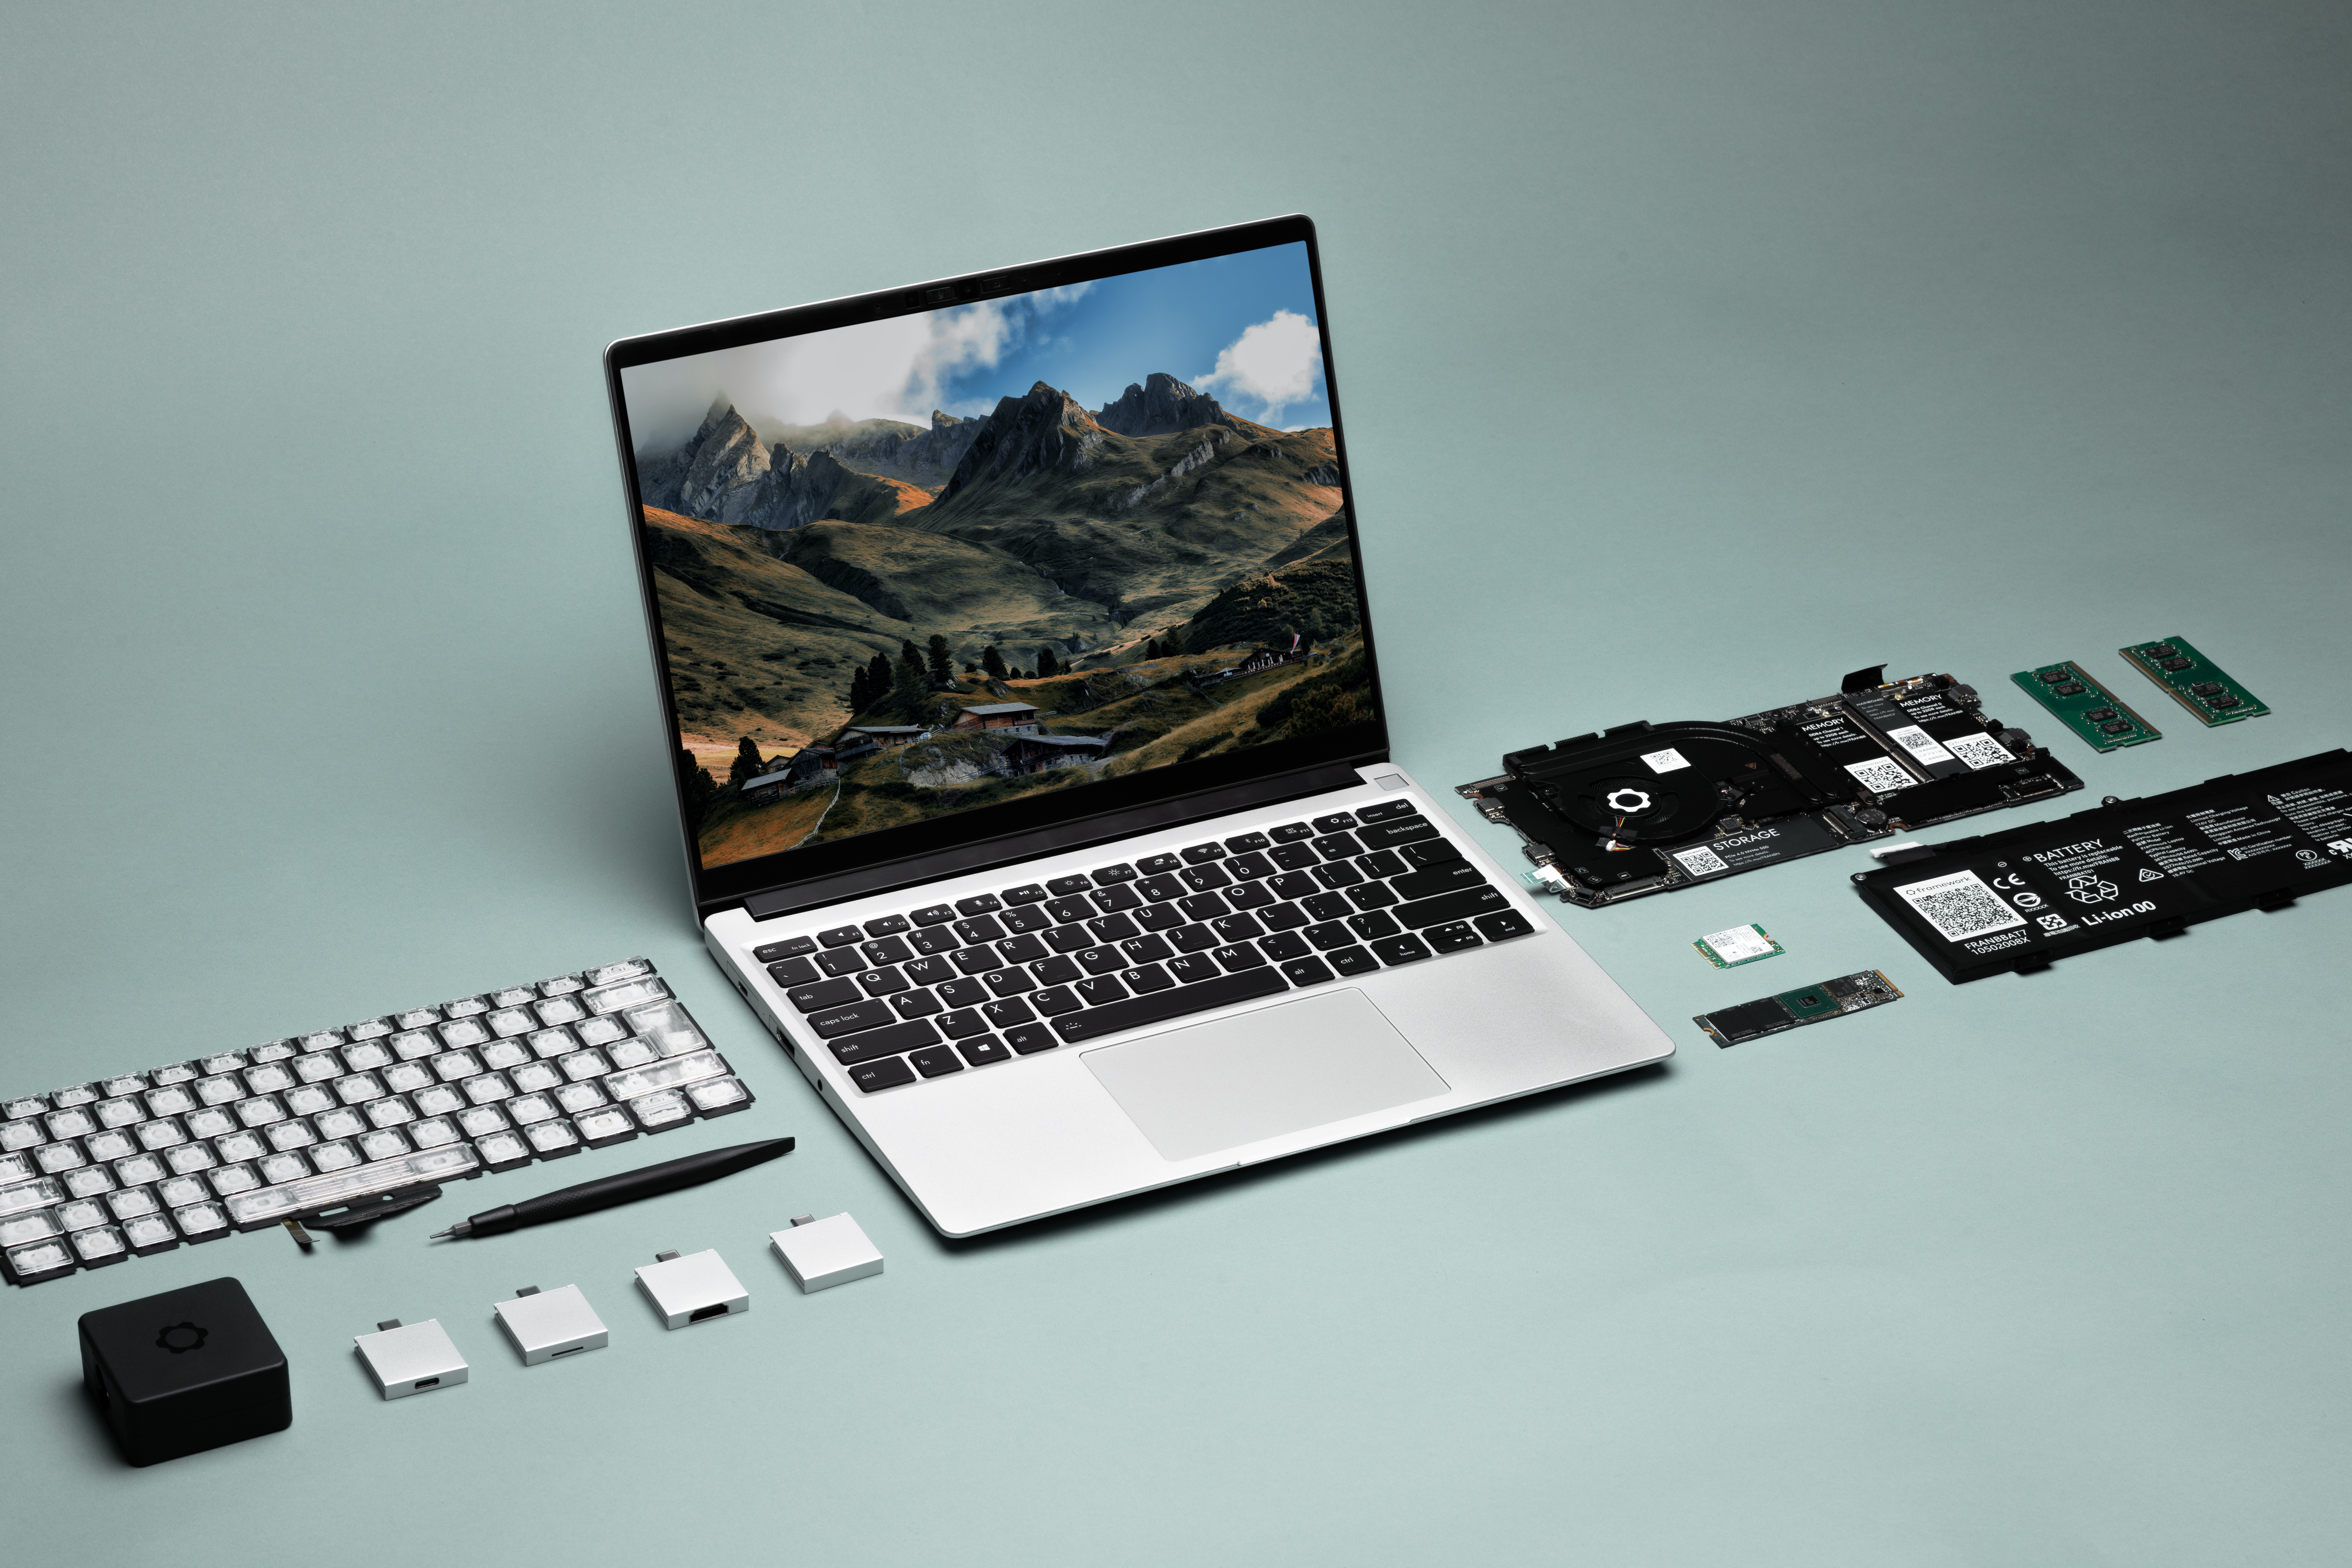 Startup designs a modular, repairable laptop